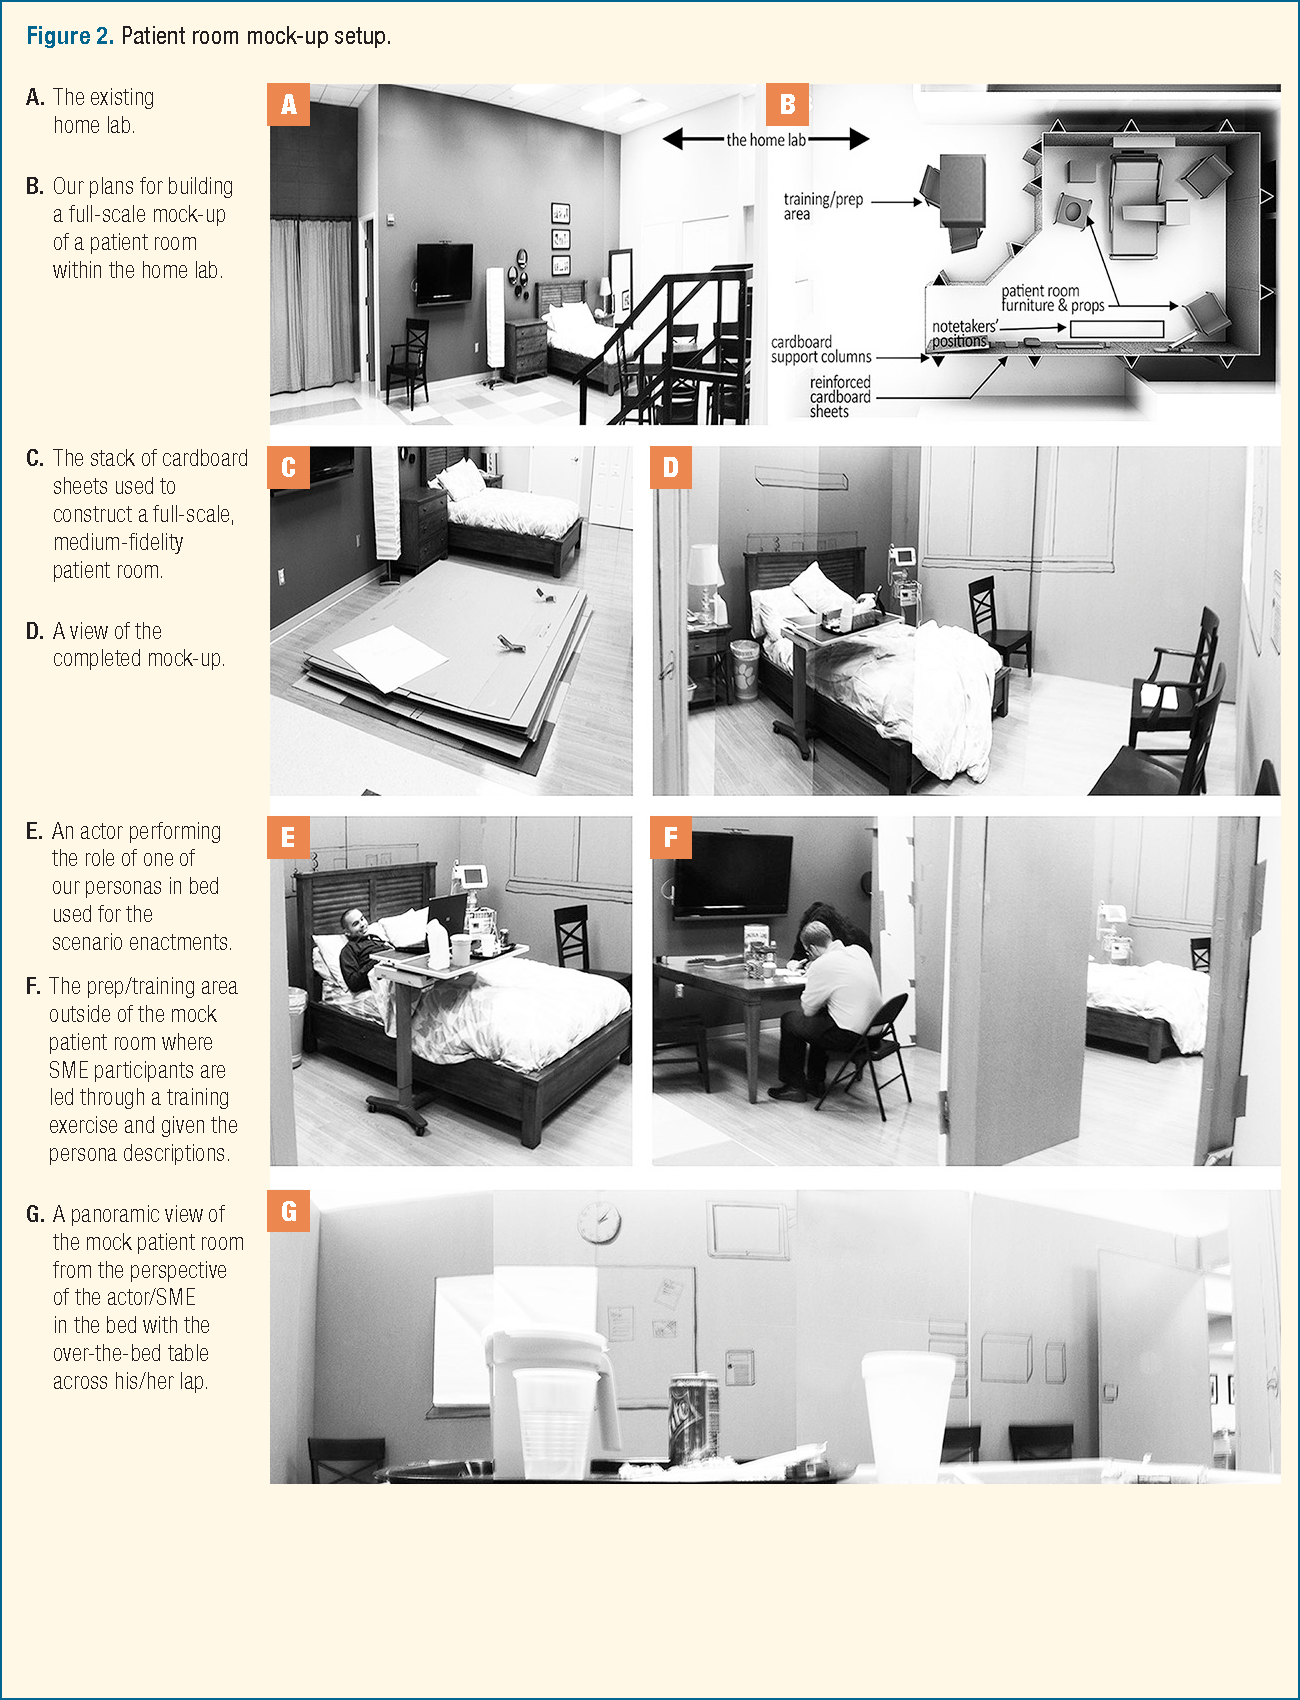 Table 2 from Examination of How and Why Over-the-Bed Tables